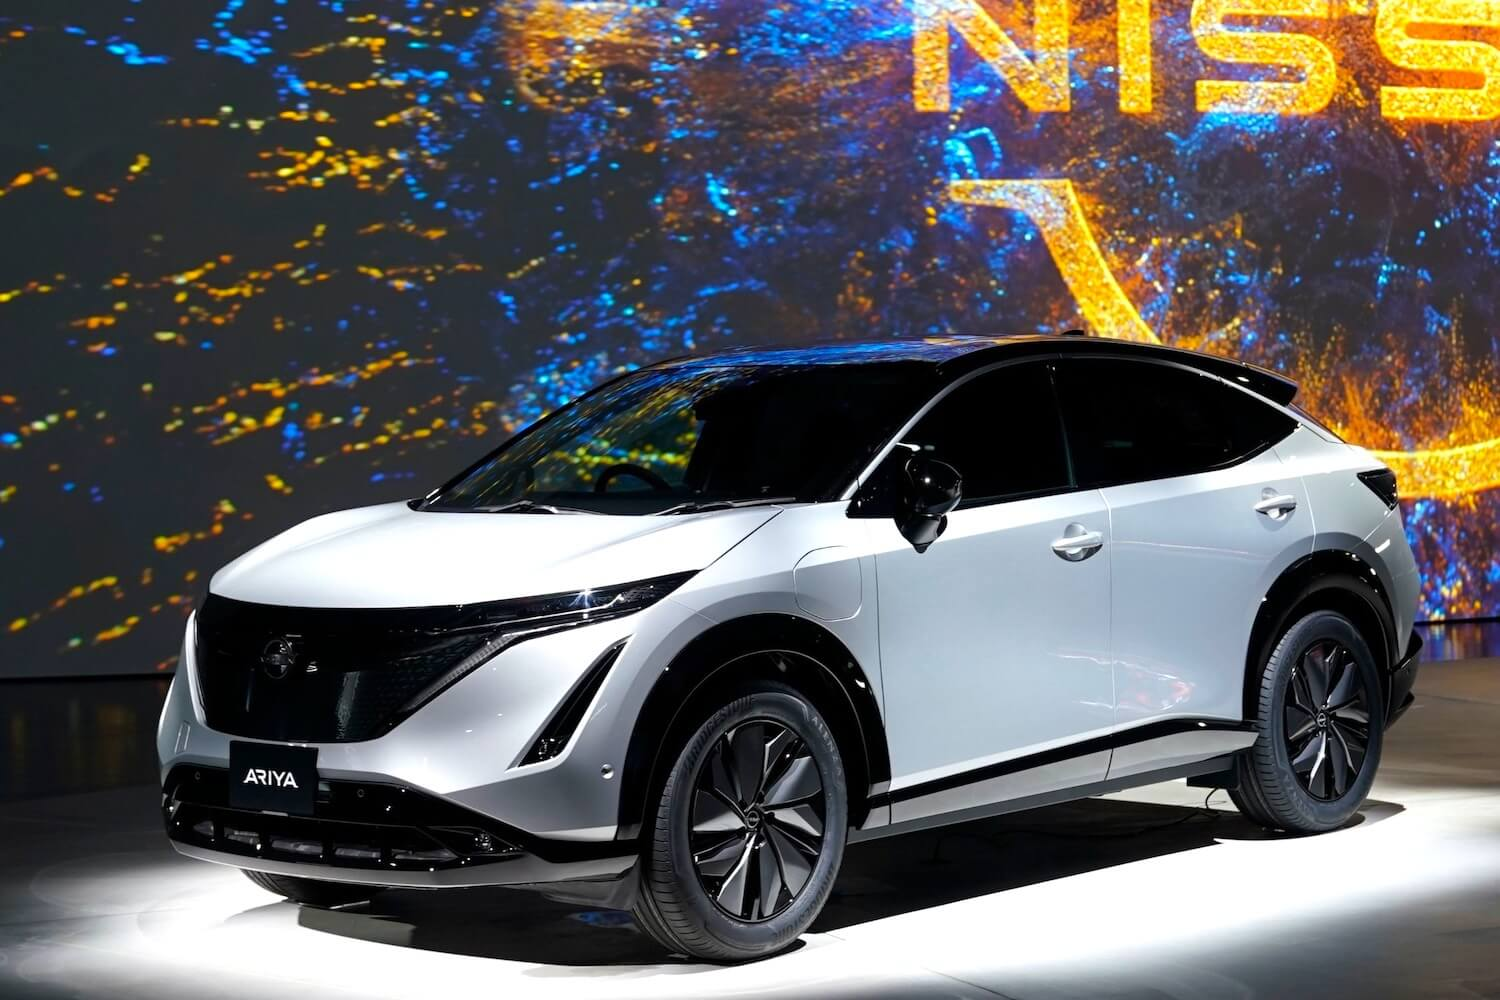 Nissan Ariya Electric Coupé Crossover revealed - GreenCarGuide.co.uk